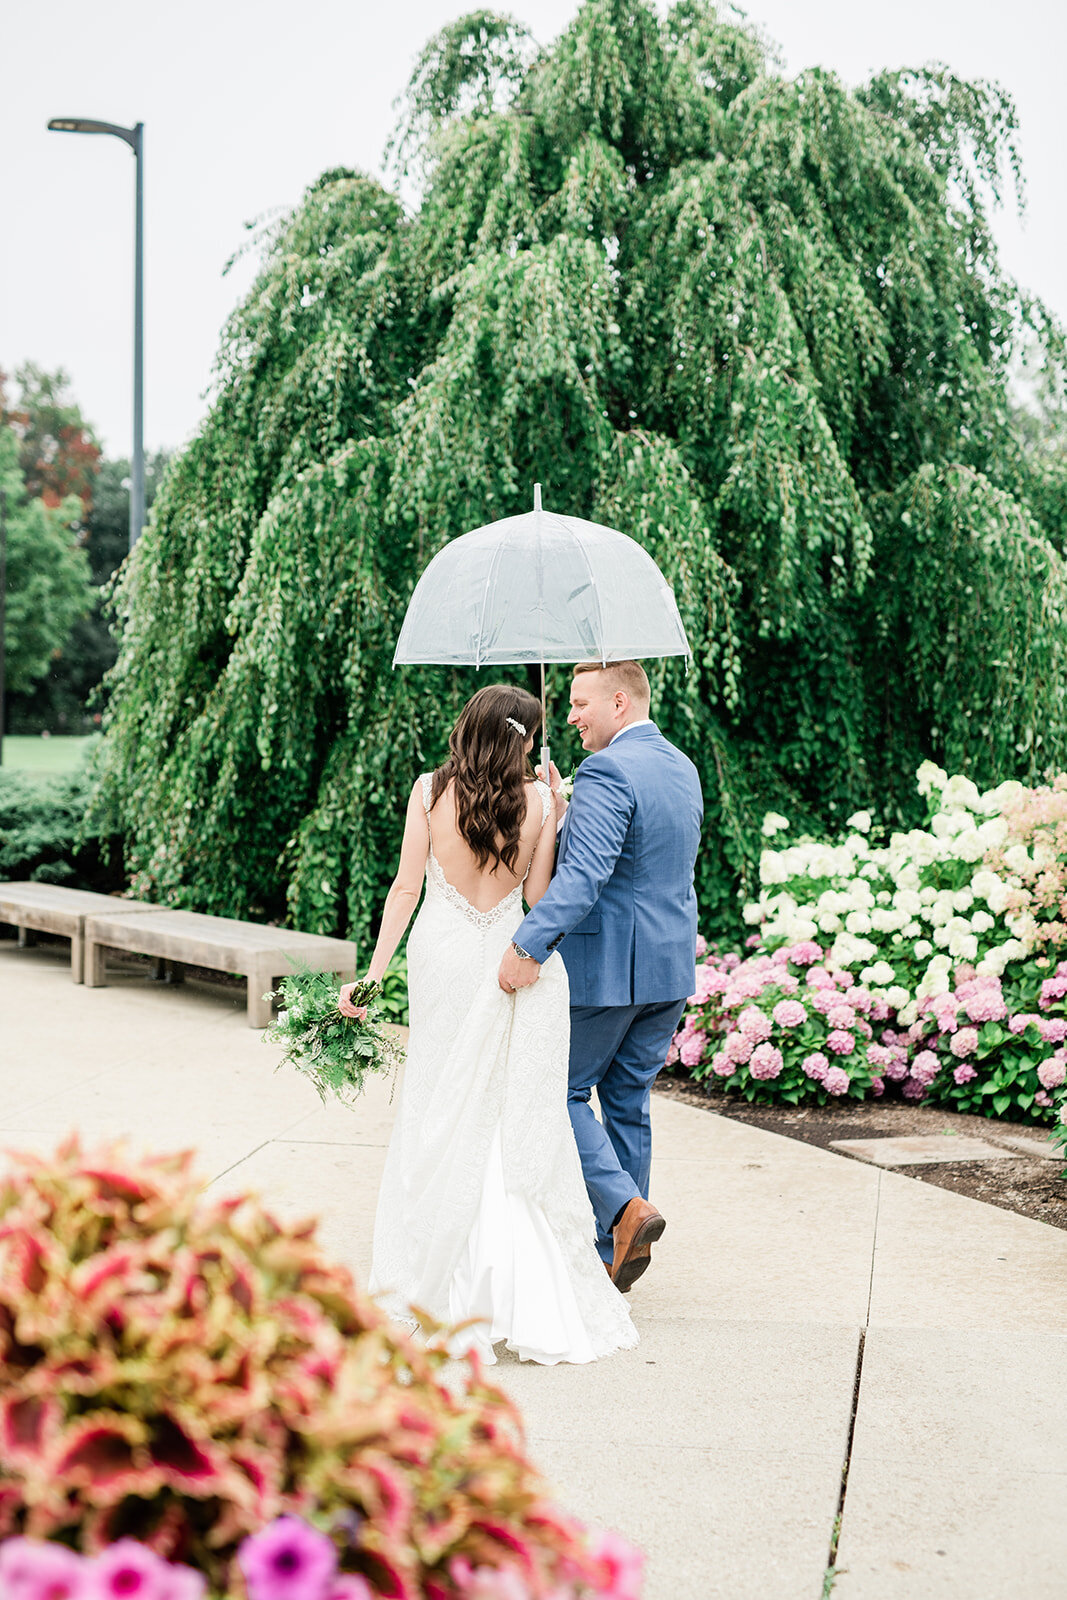 01-Cleveland-Botanical-Garden-Wedding-Cleveland-Wedding-Photographer-Balsam-and-Blush_52